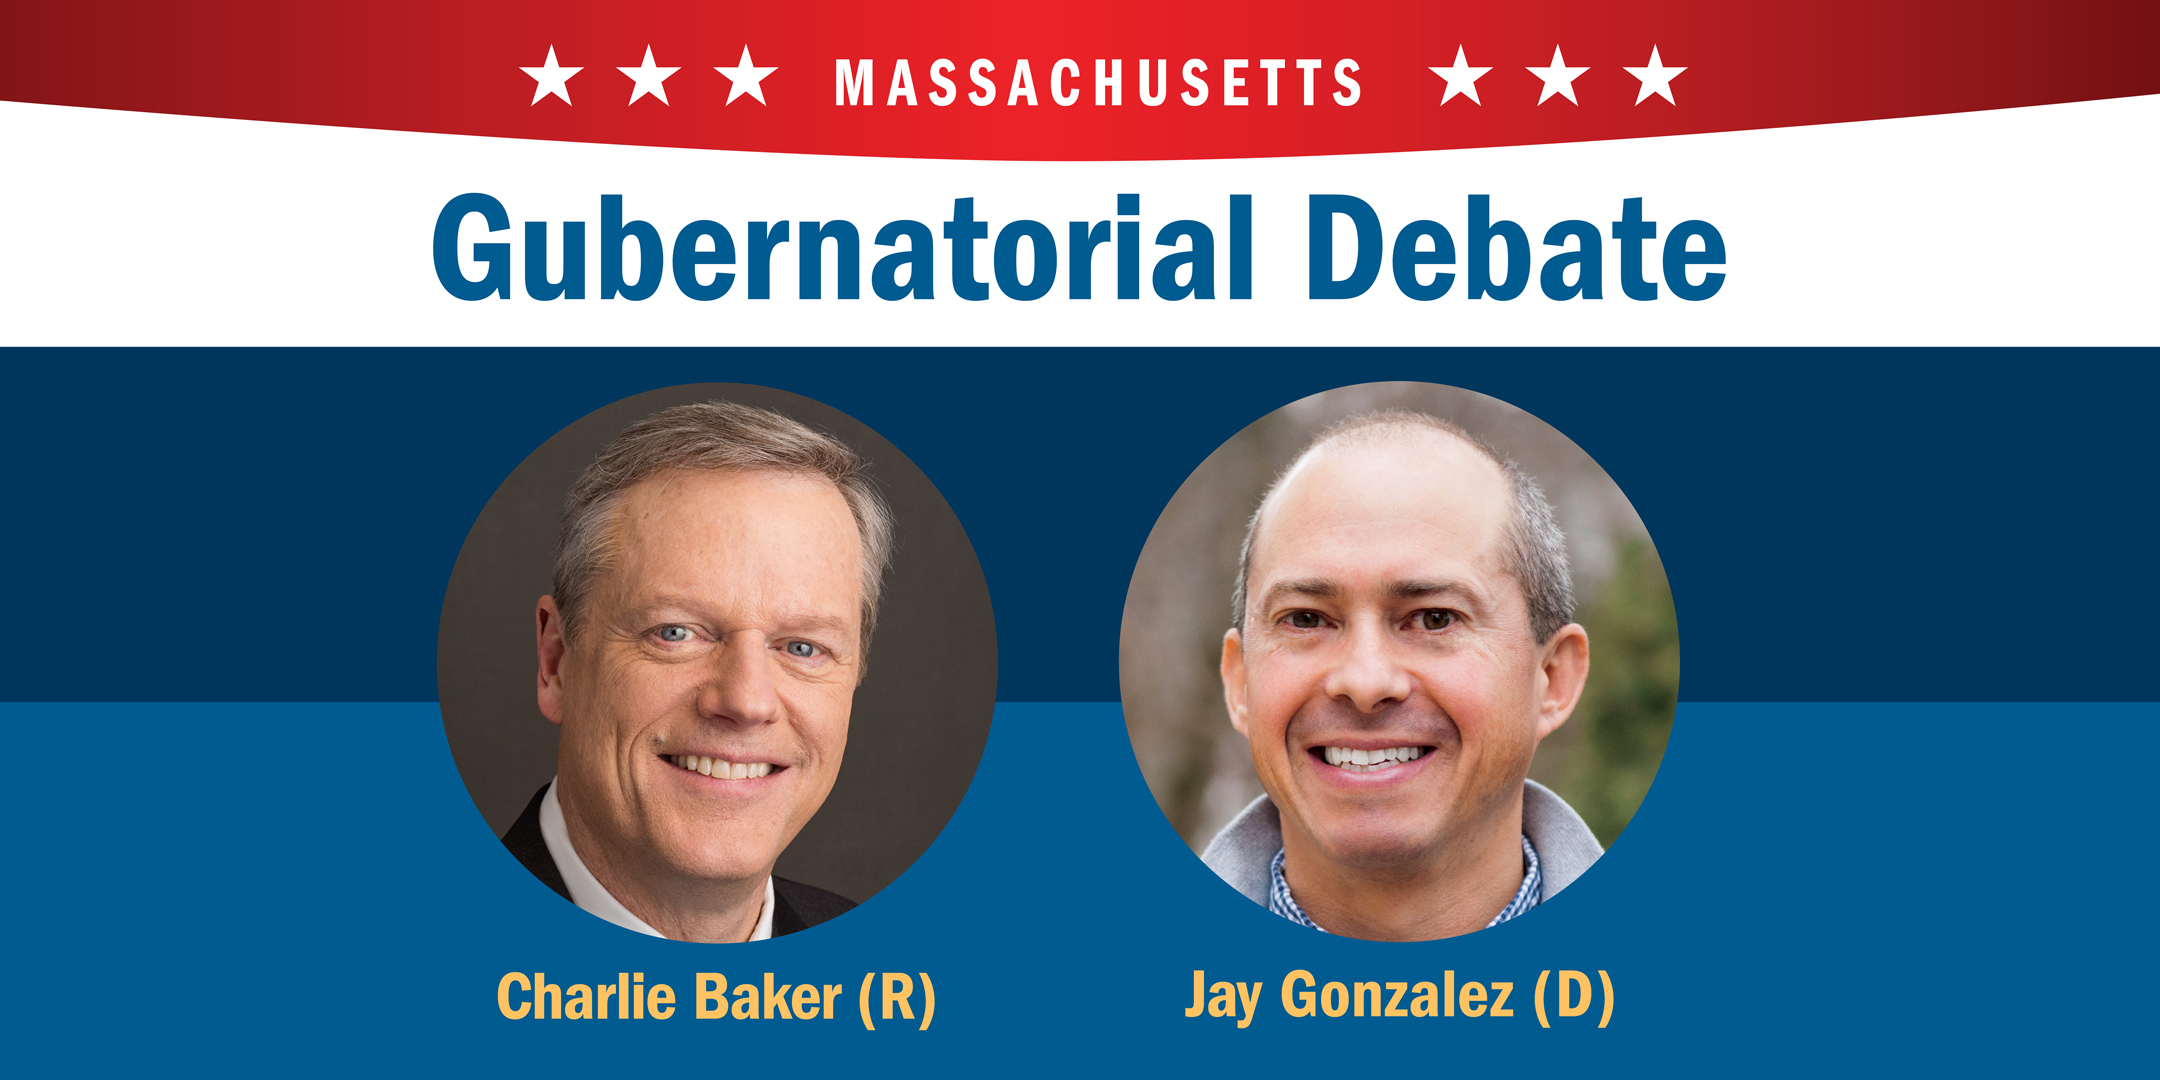 Charlie Baker and Jay Gonzalez